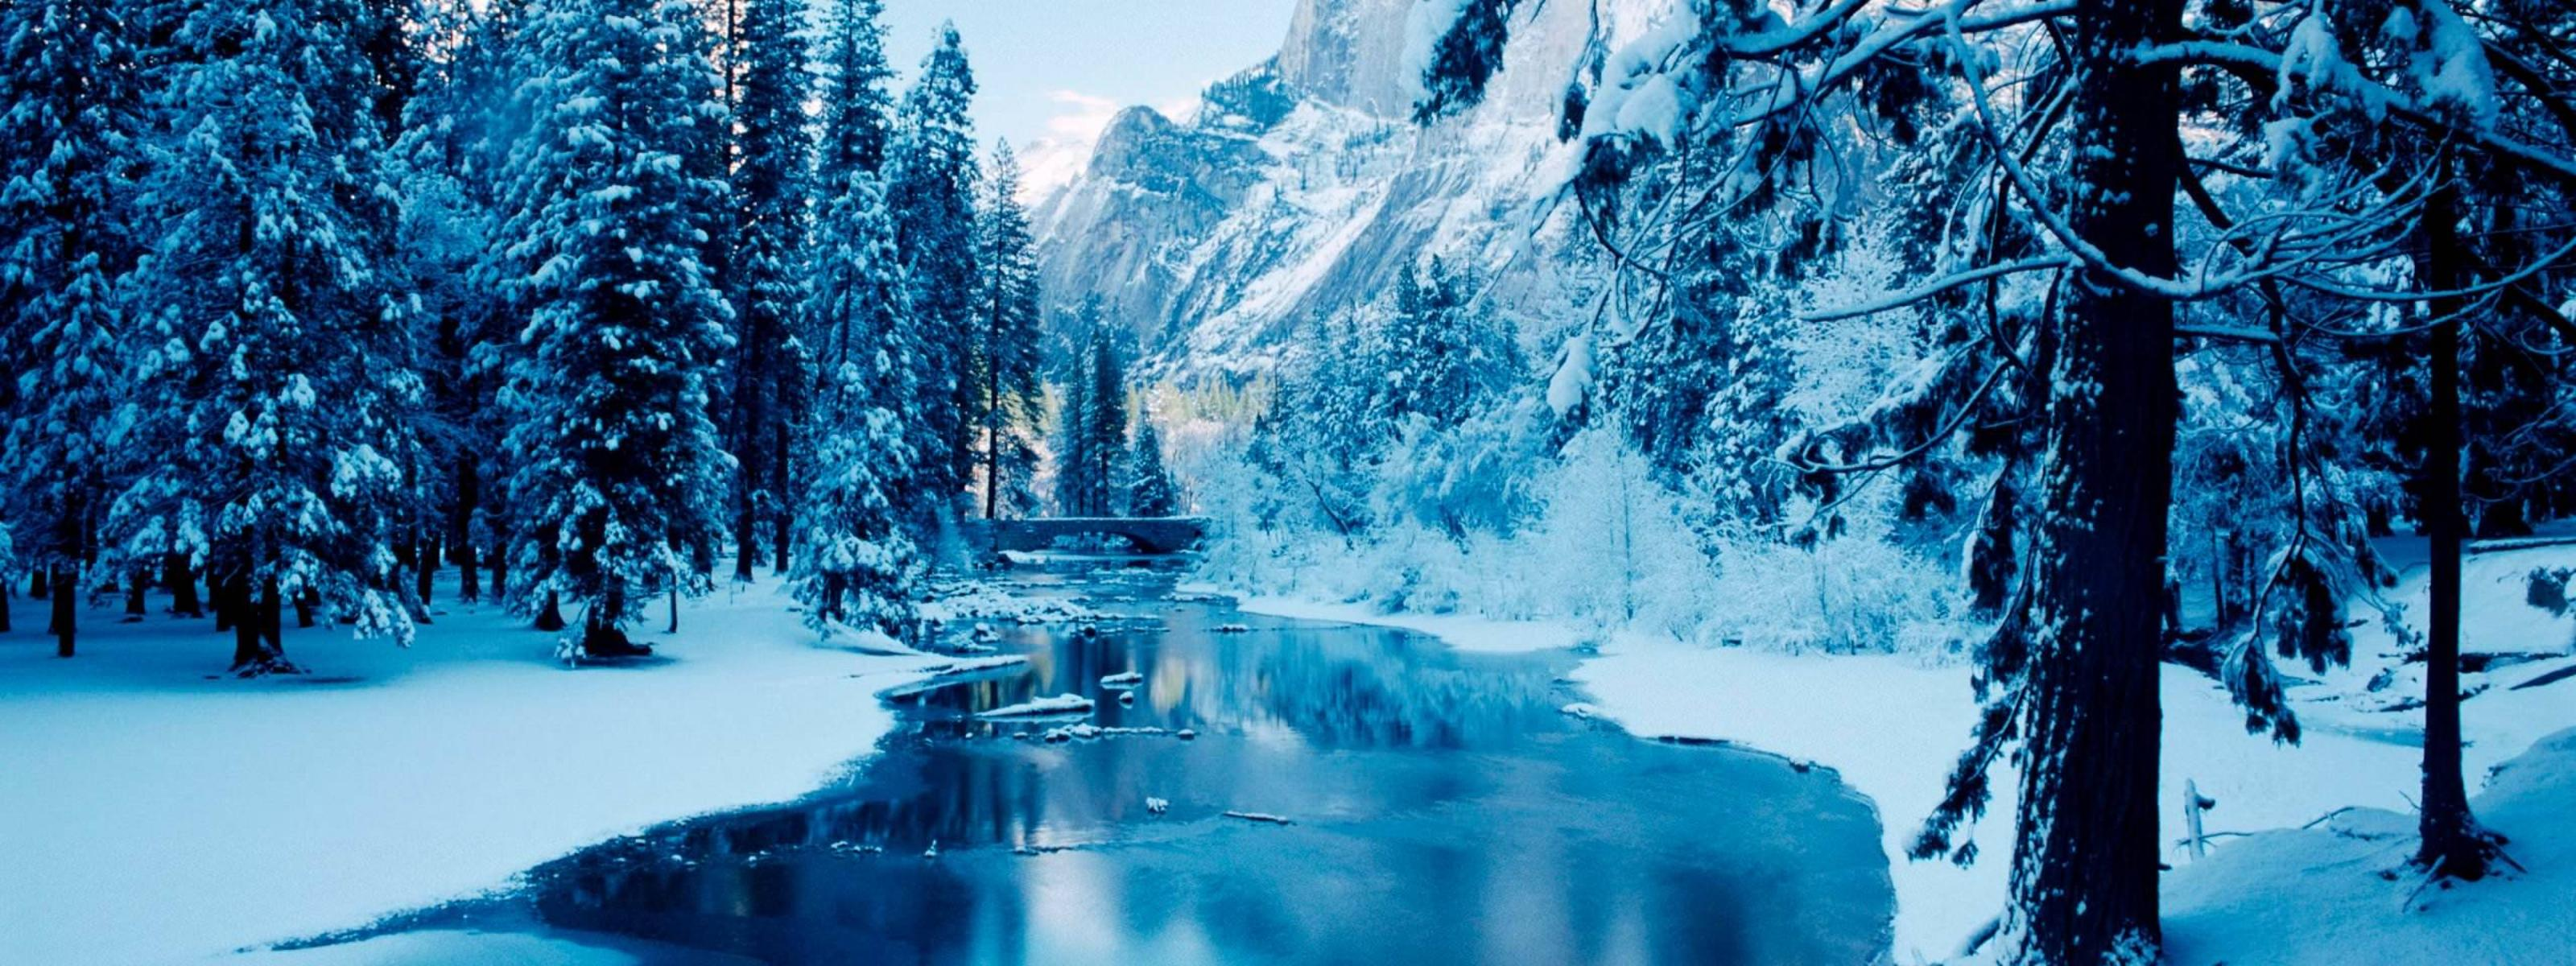 Cute White Dogs Wallpapers Cold Winter Mountain River White Nature Landscape